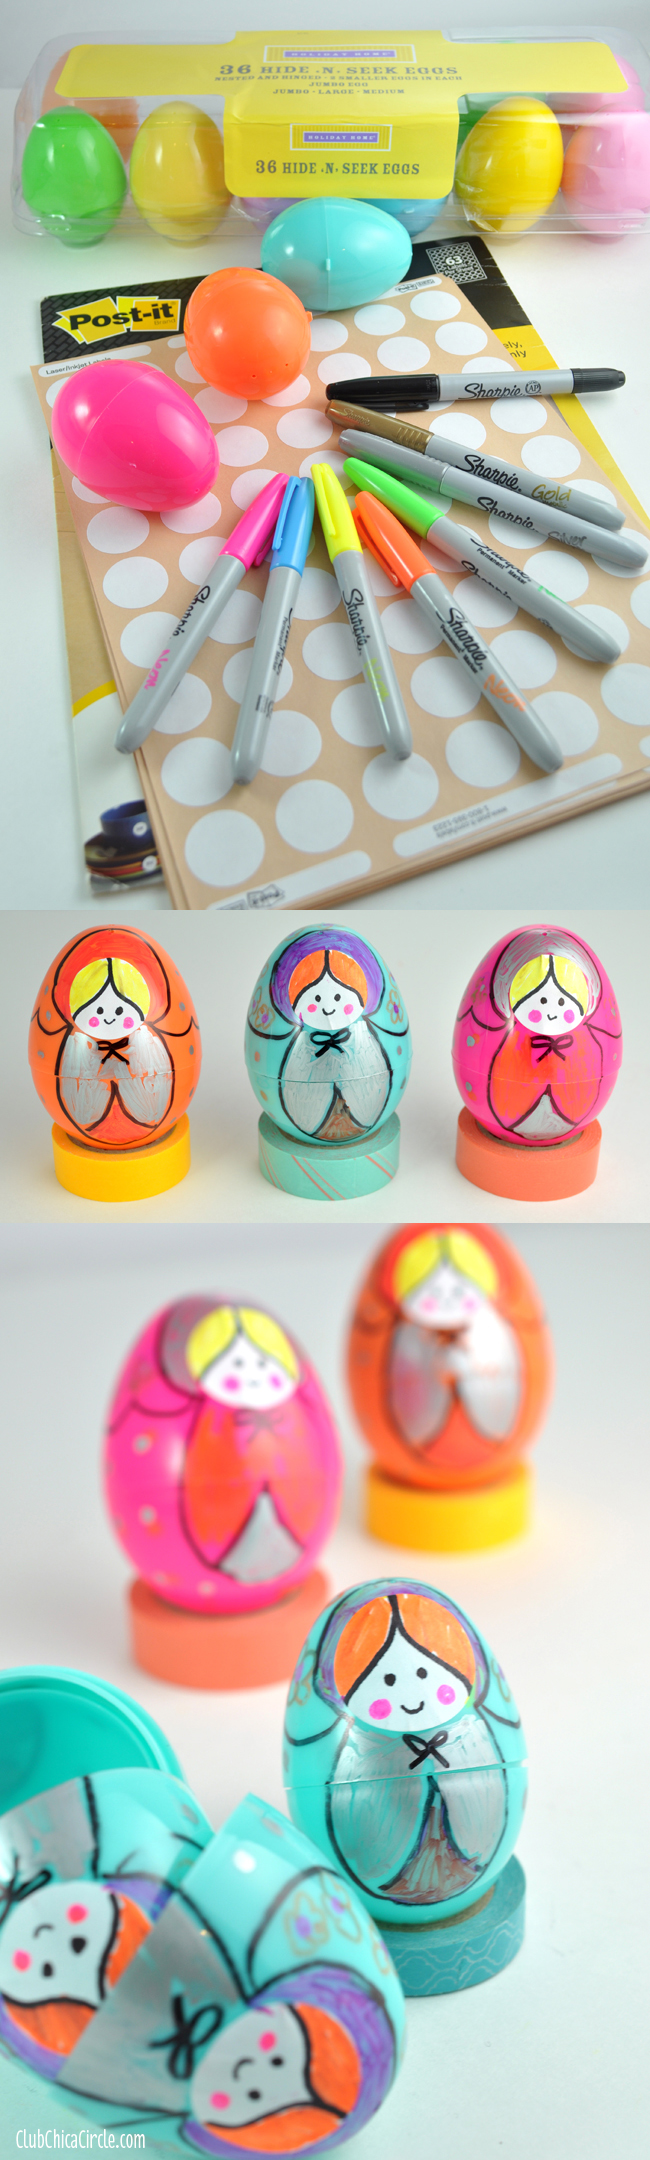 Russian Nesting Dolls Plastic Egg Craft Supplies